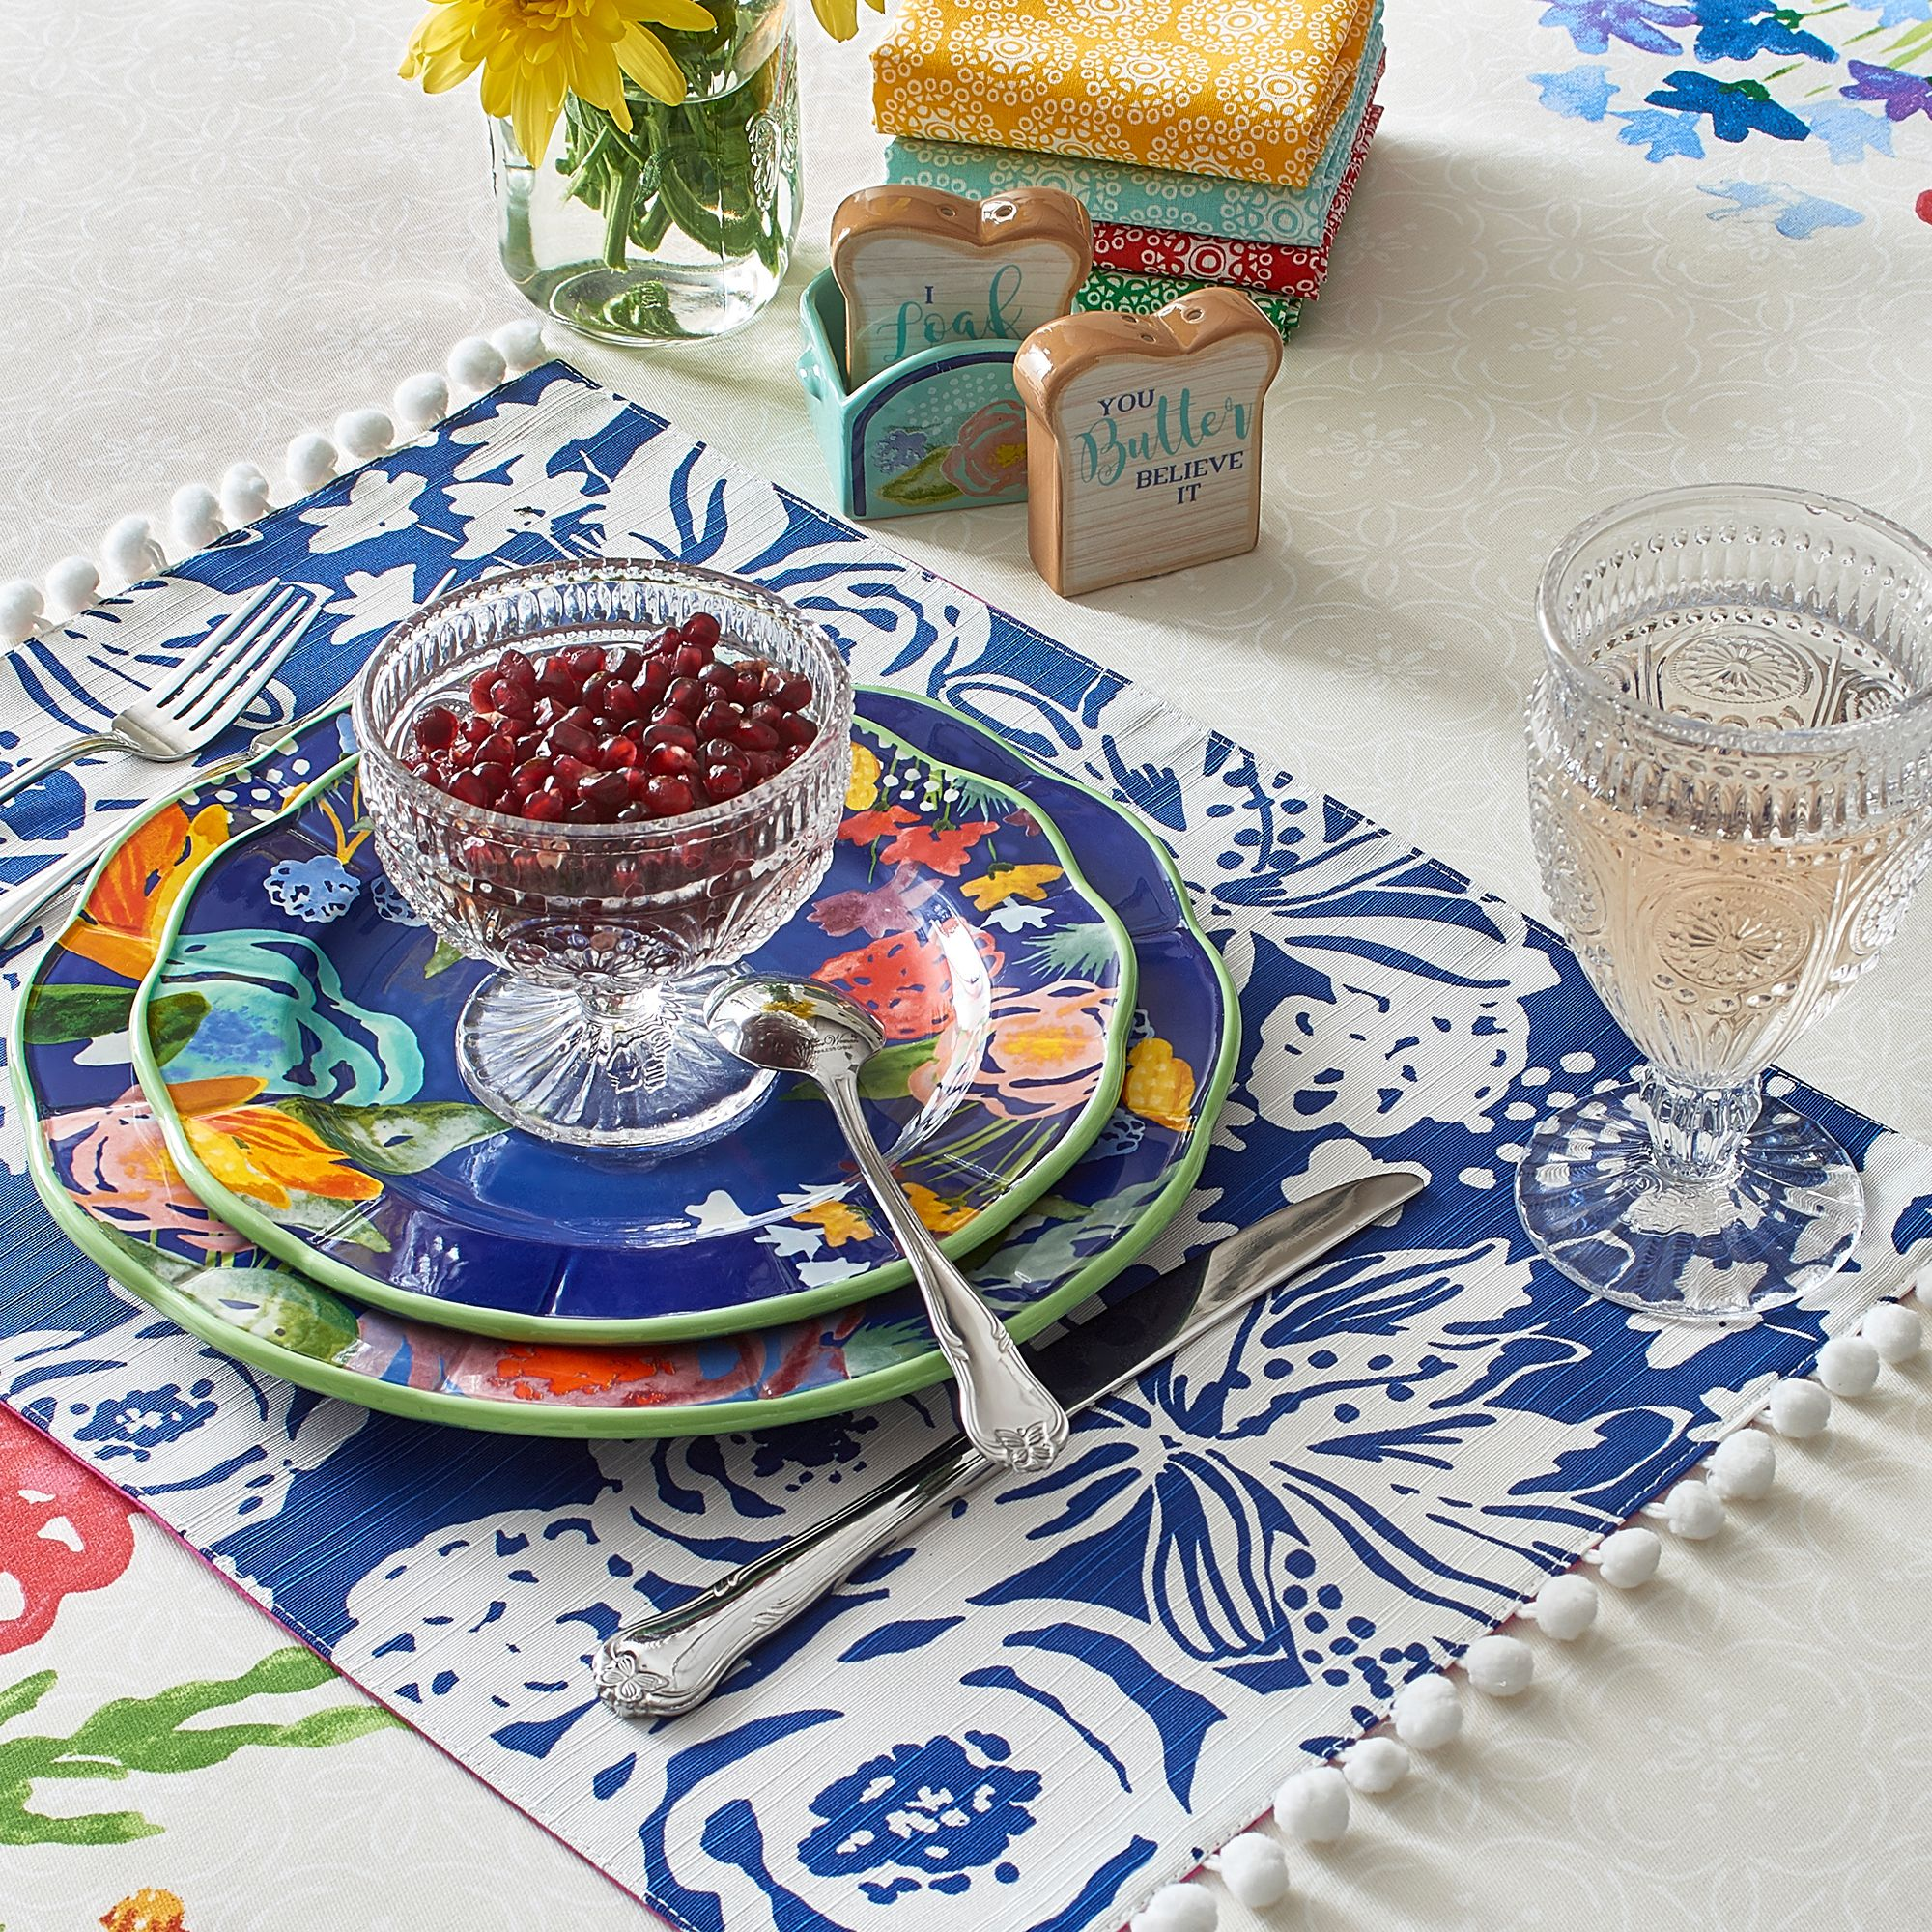 The Pioneer Woman Celia Reversible Pom Pom Placemat